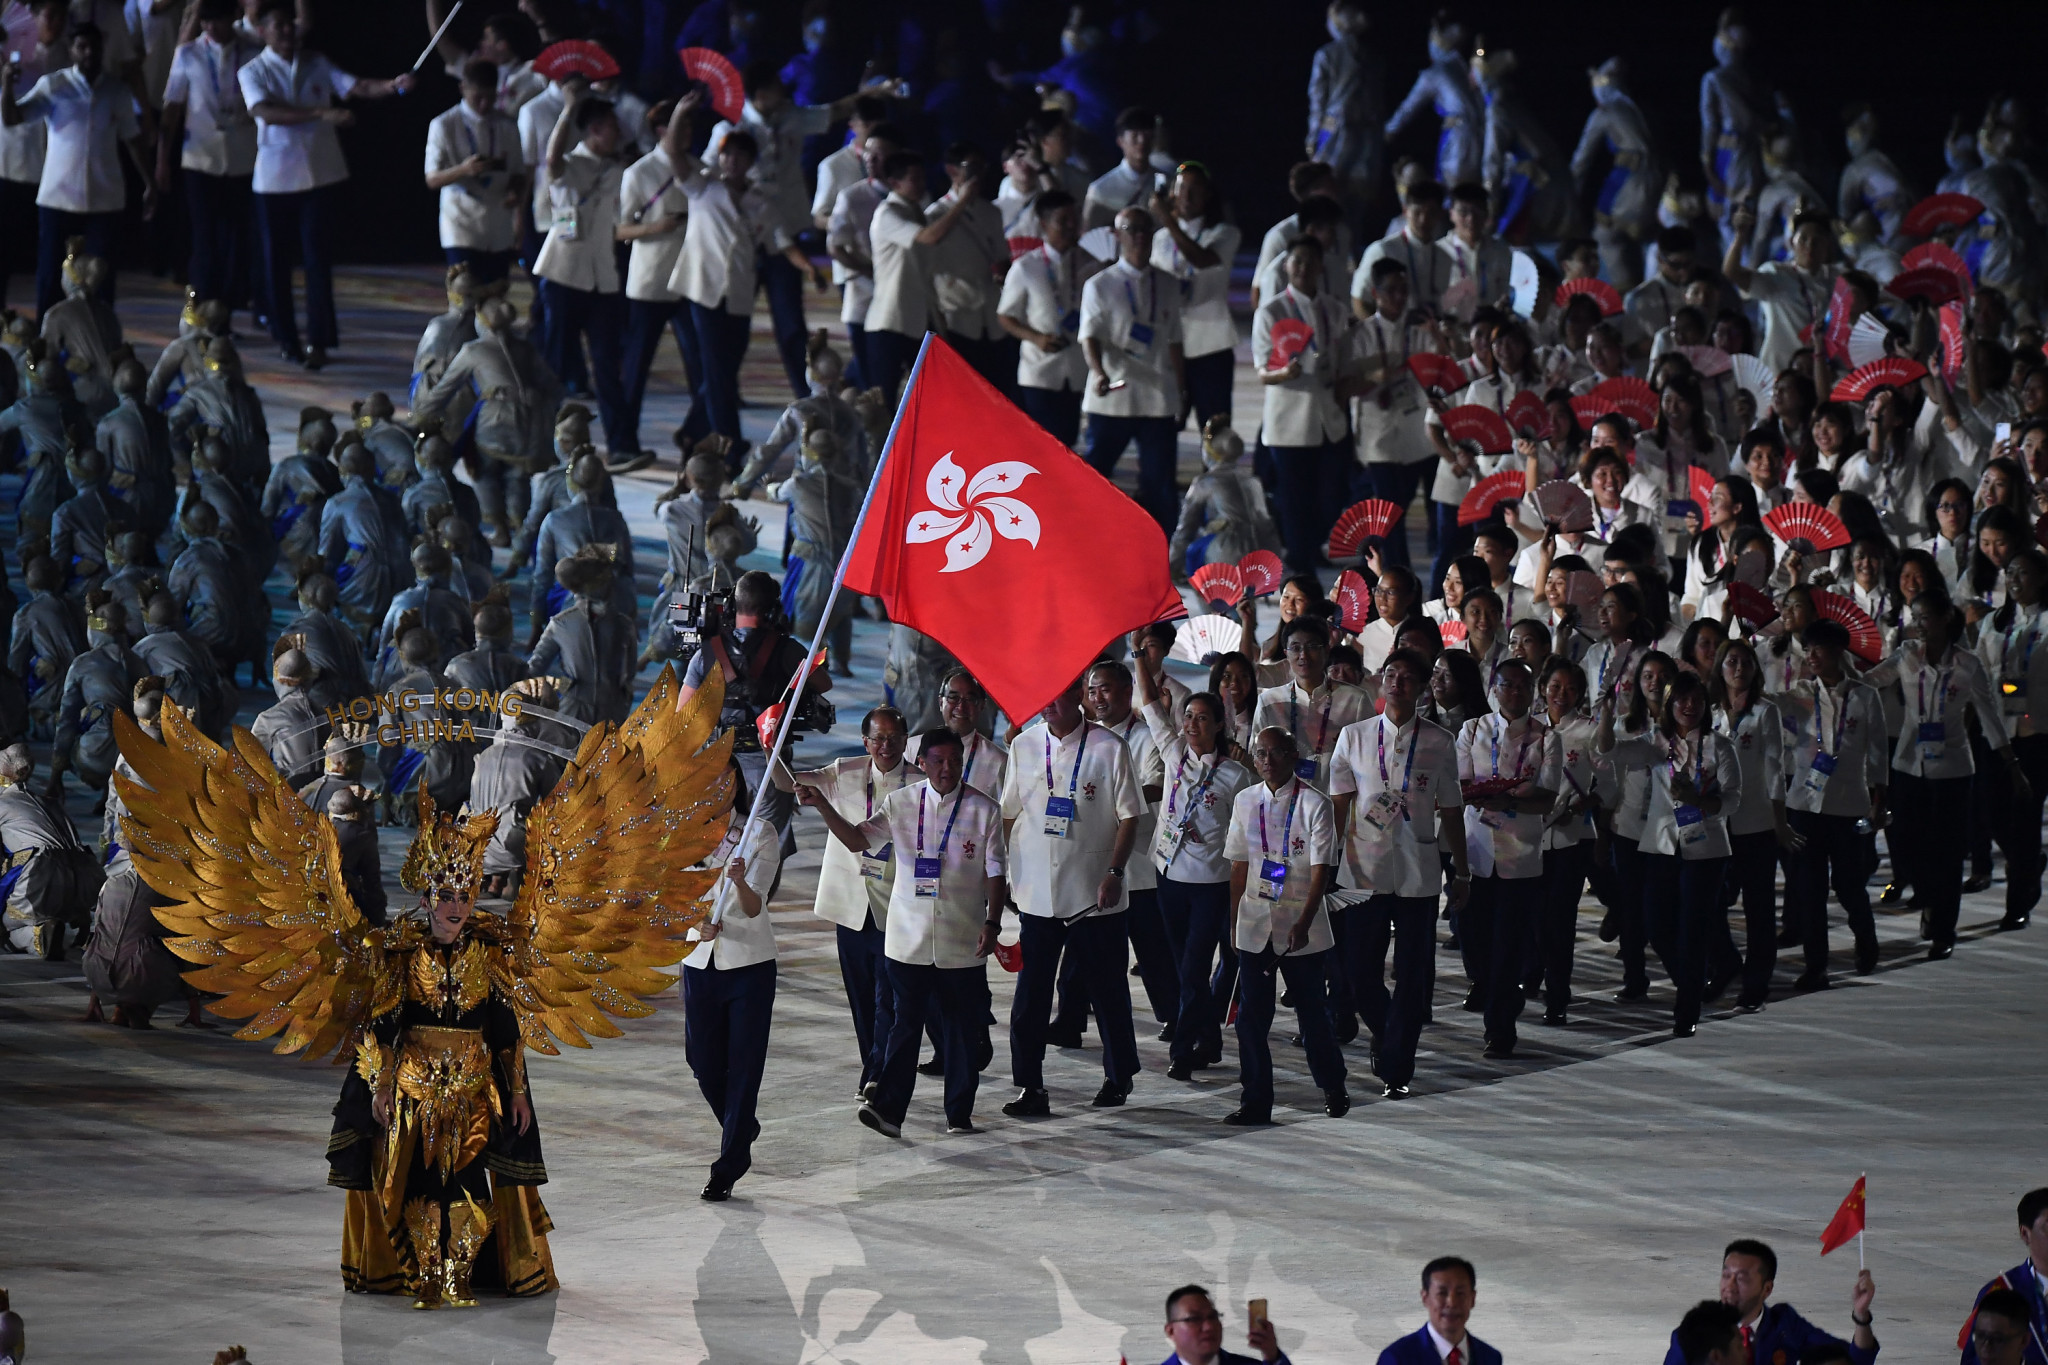 Hong Kong NOC under fire over governance and athlete selection